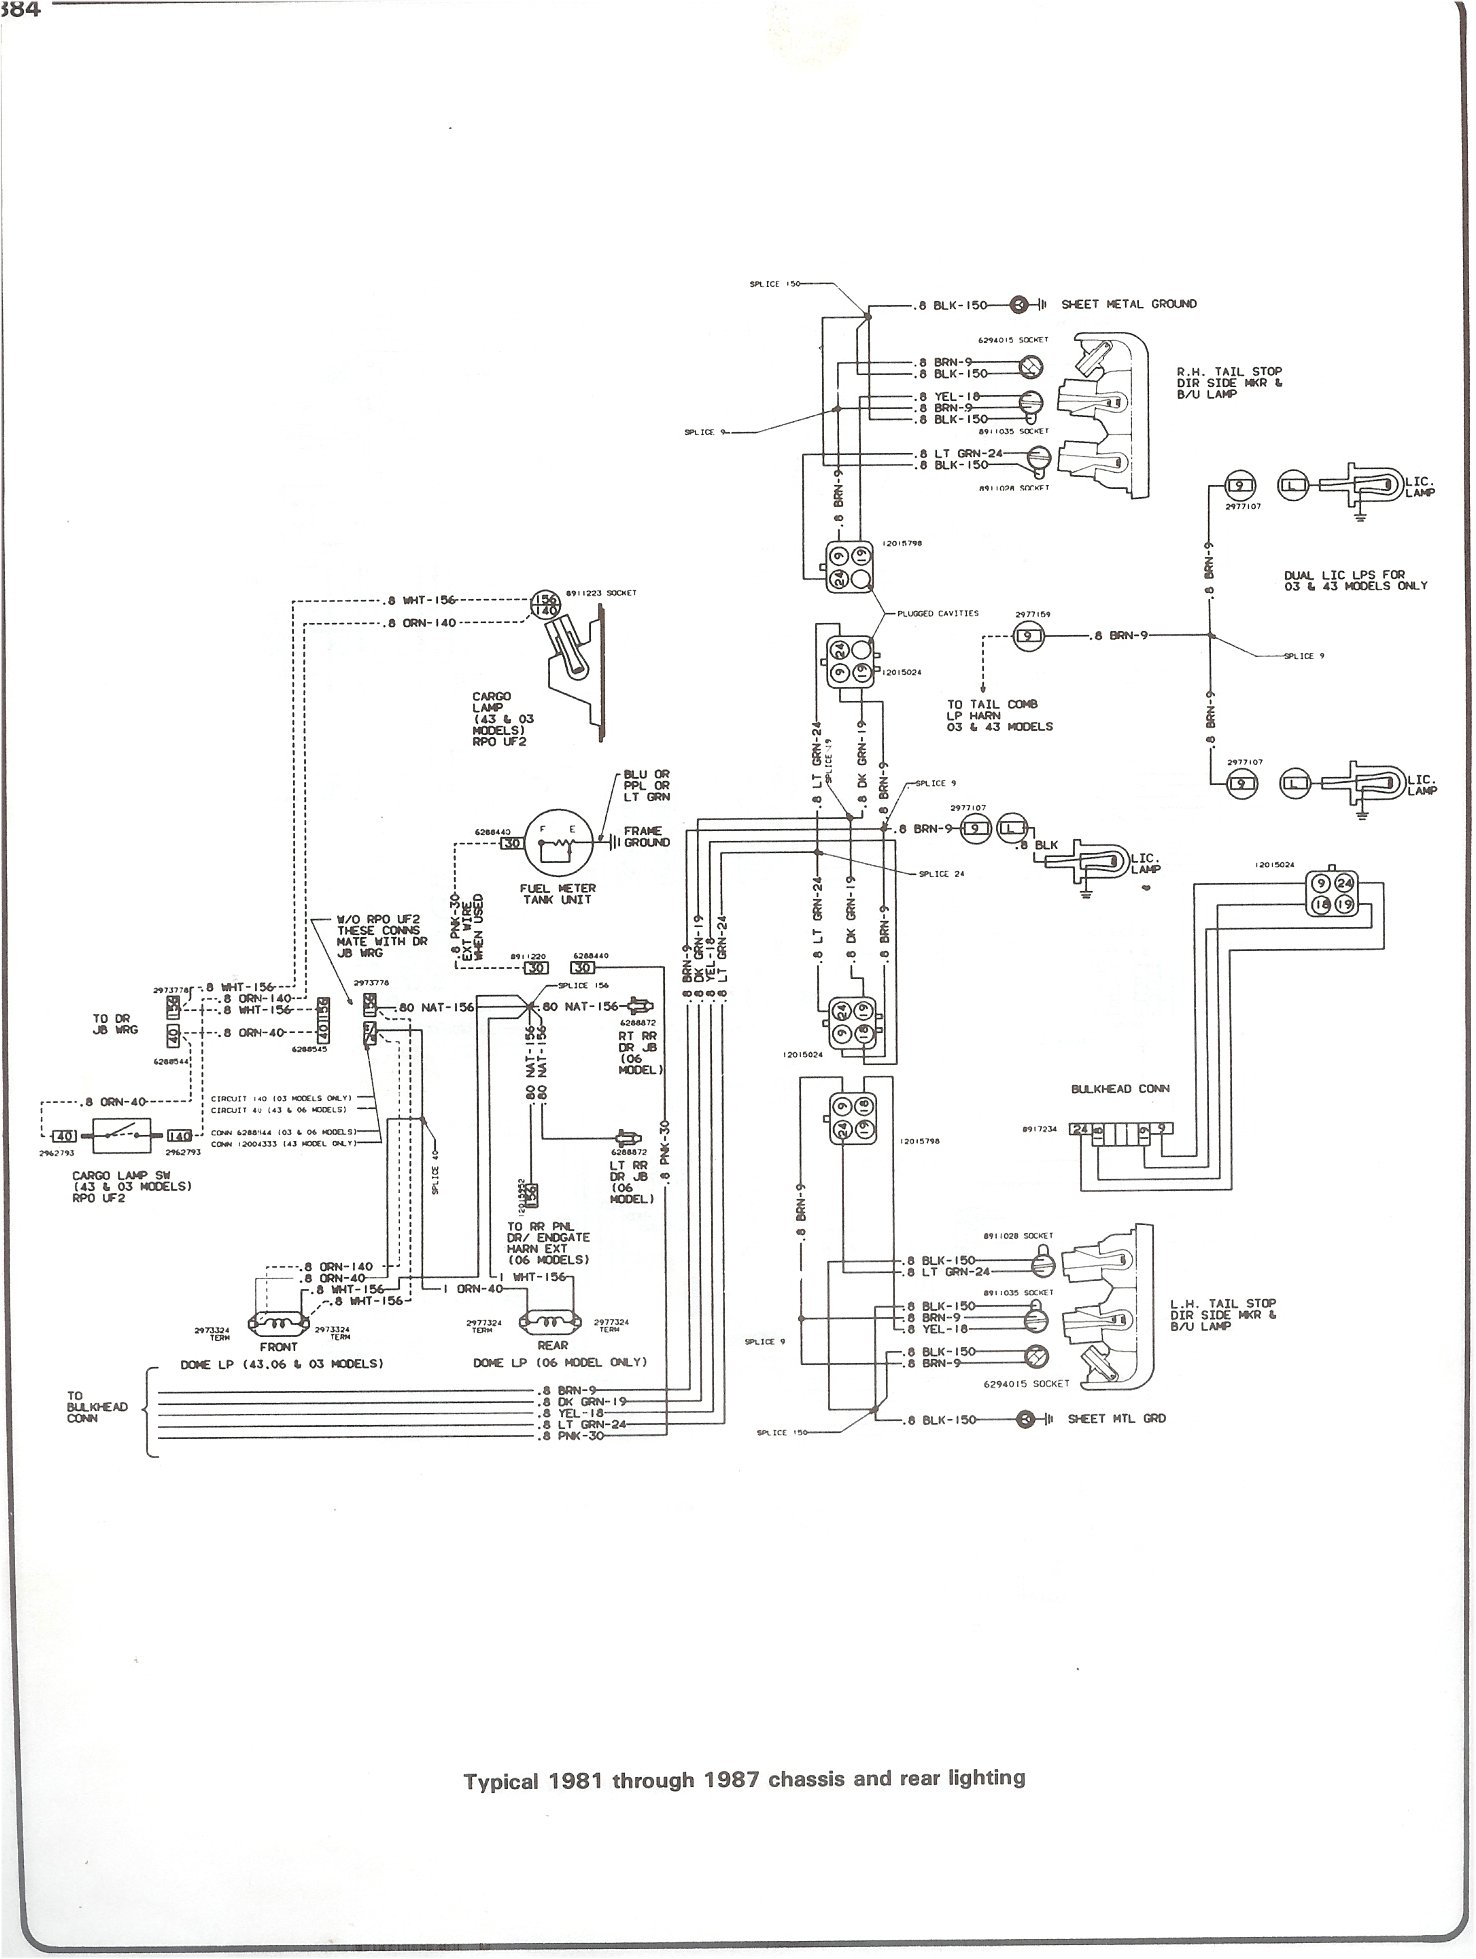 81 87_chass_rr_light complete 73 87 wiring diagrams wiring diagram for 1986 chevy p30 7.4l at soozxer.org